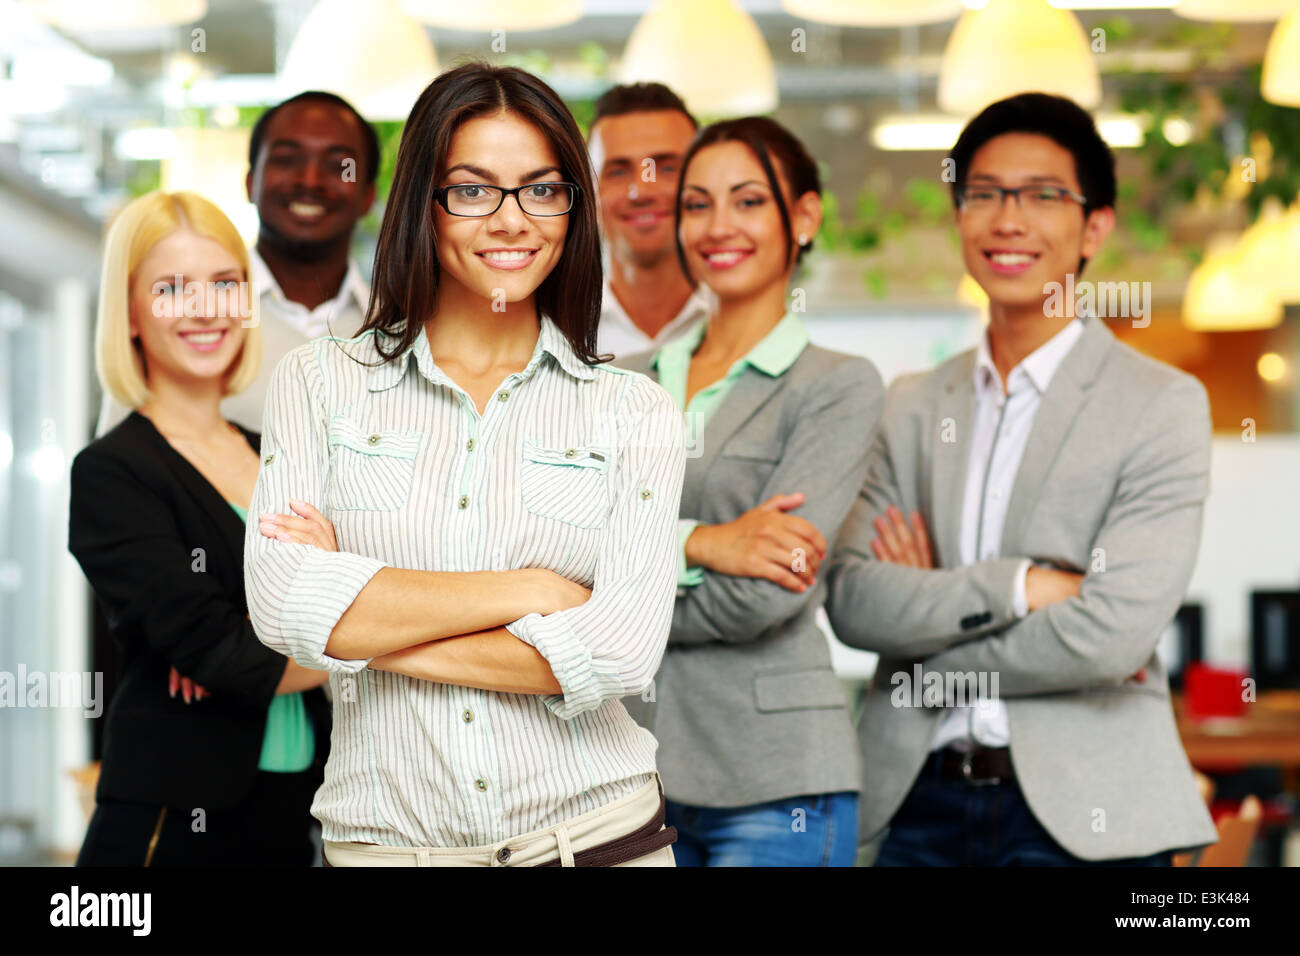 Smiling group of co-workers standing in office - Stock Image